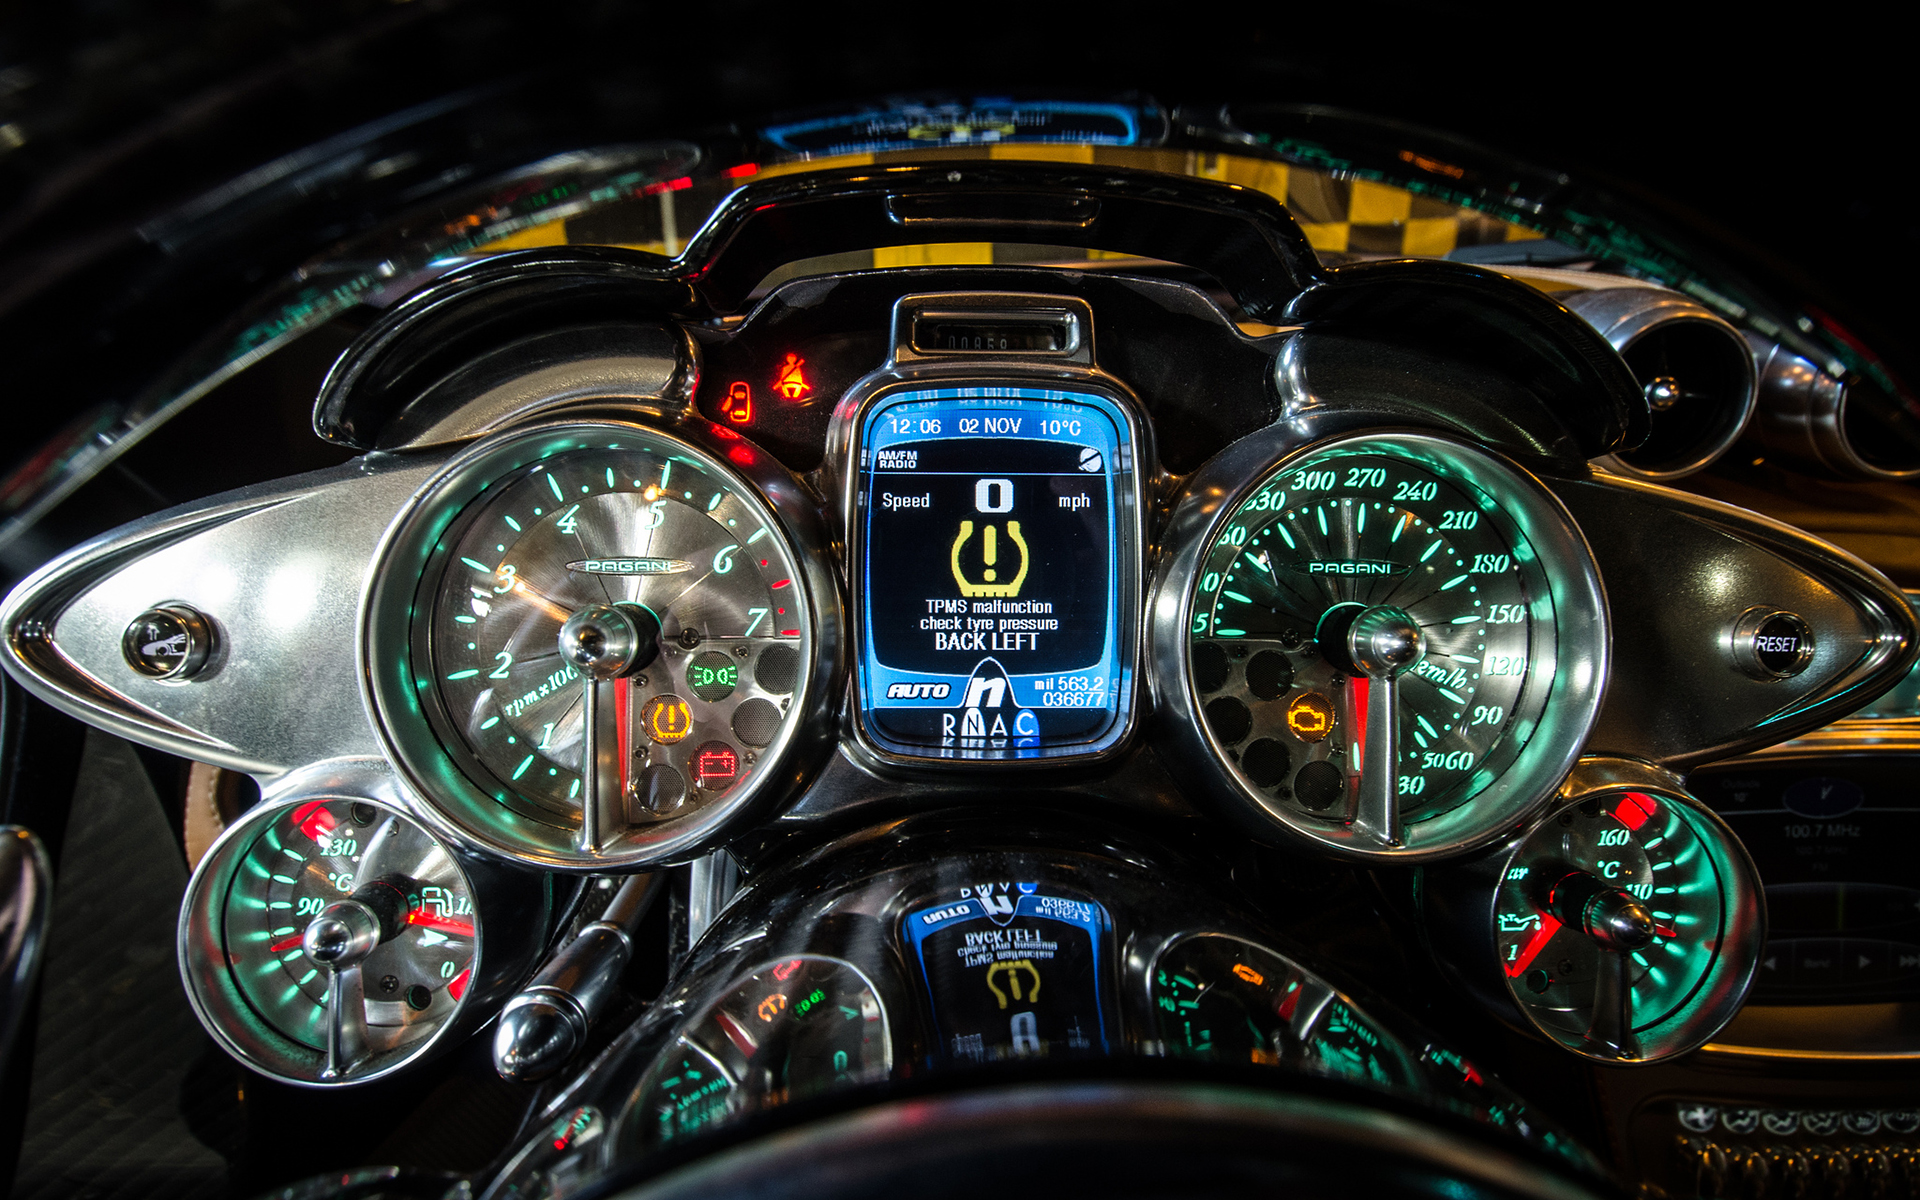 Pagani Huayra Gauges Interior Supercar Dashboard Wallpaper